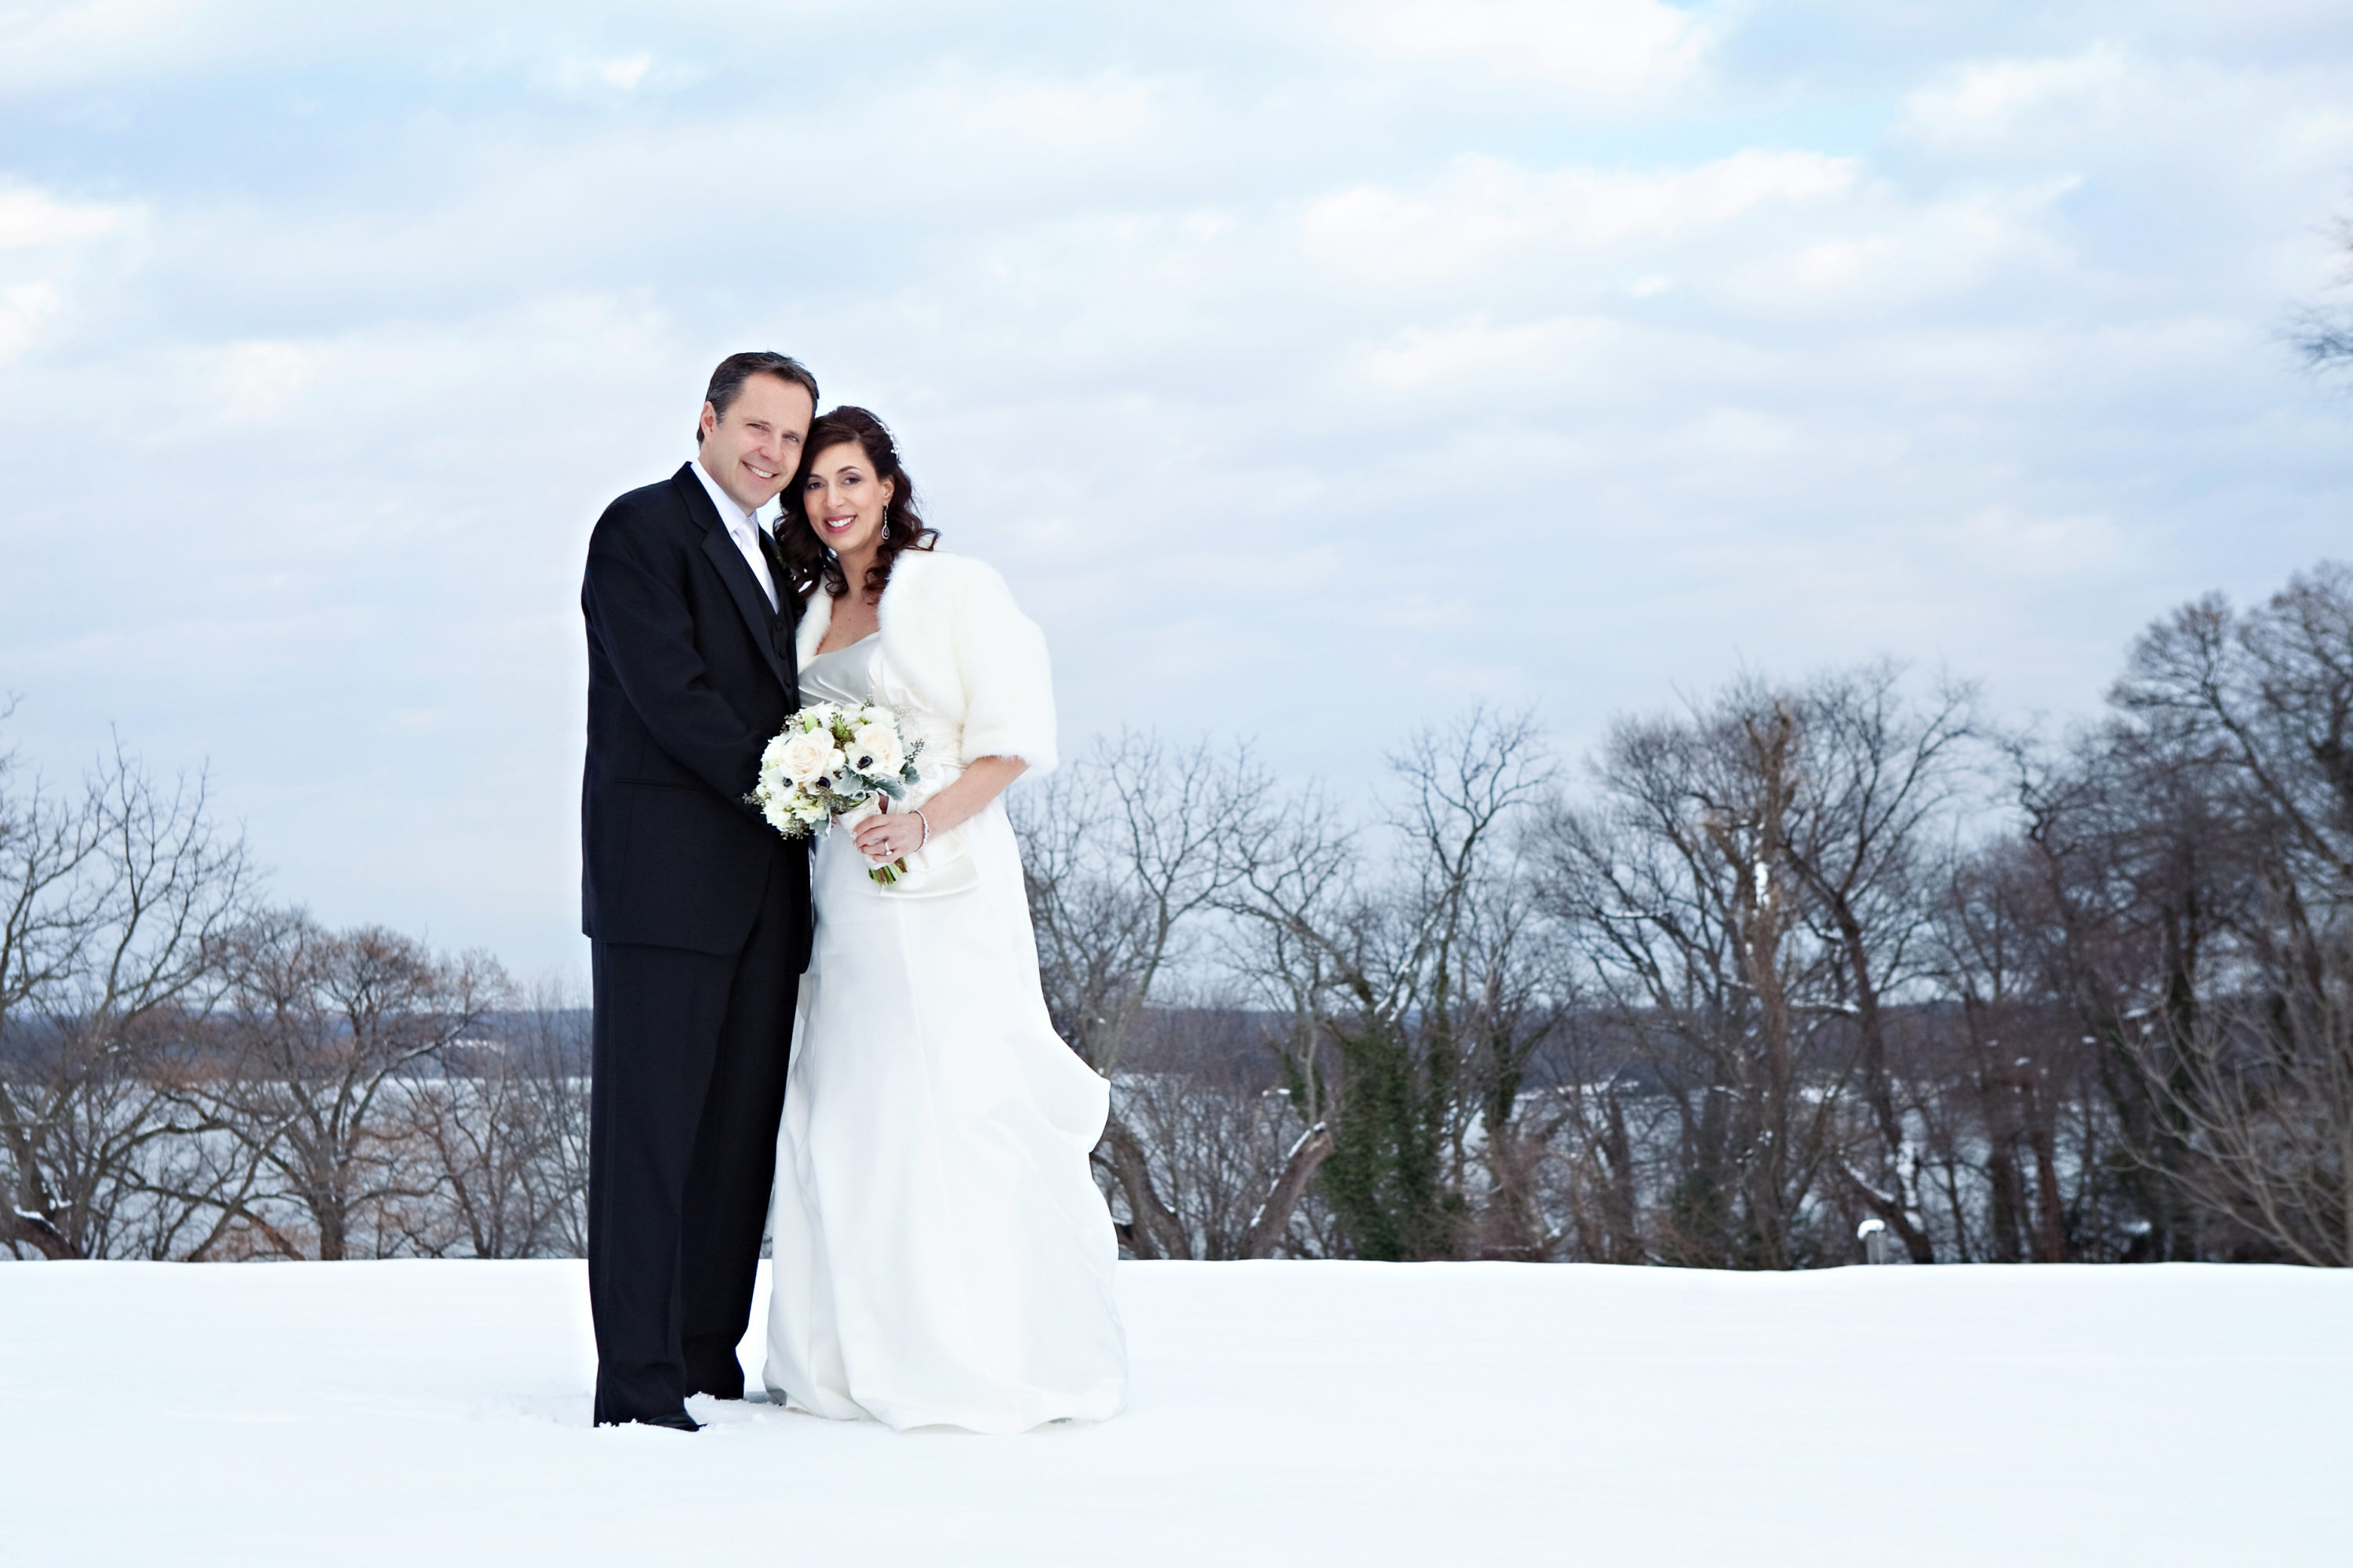 18 reasons we love winter weddings and you should too 1 21 15 reasons we love winter weddings junglespirit Images